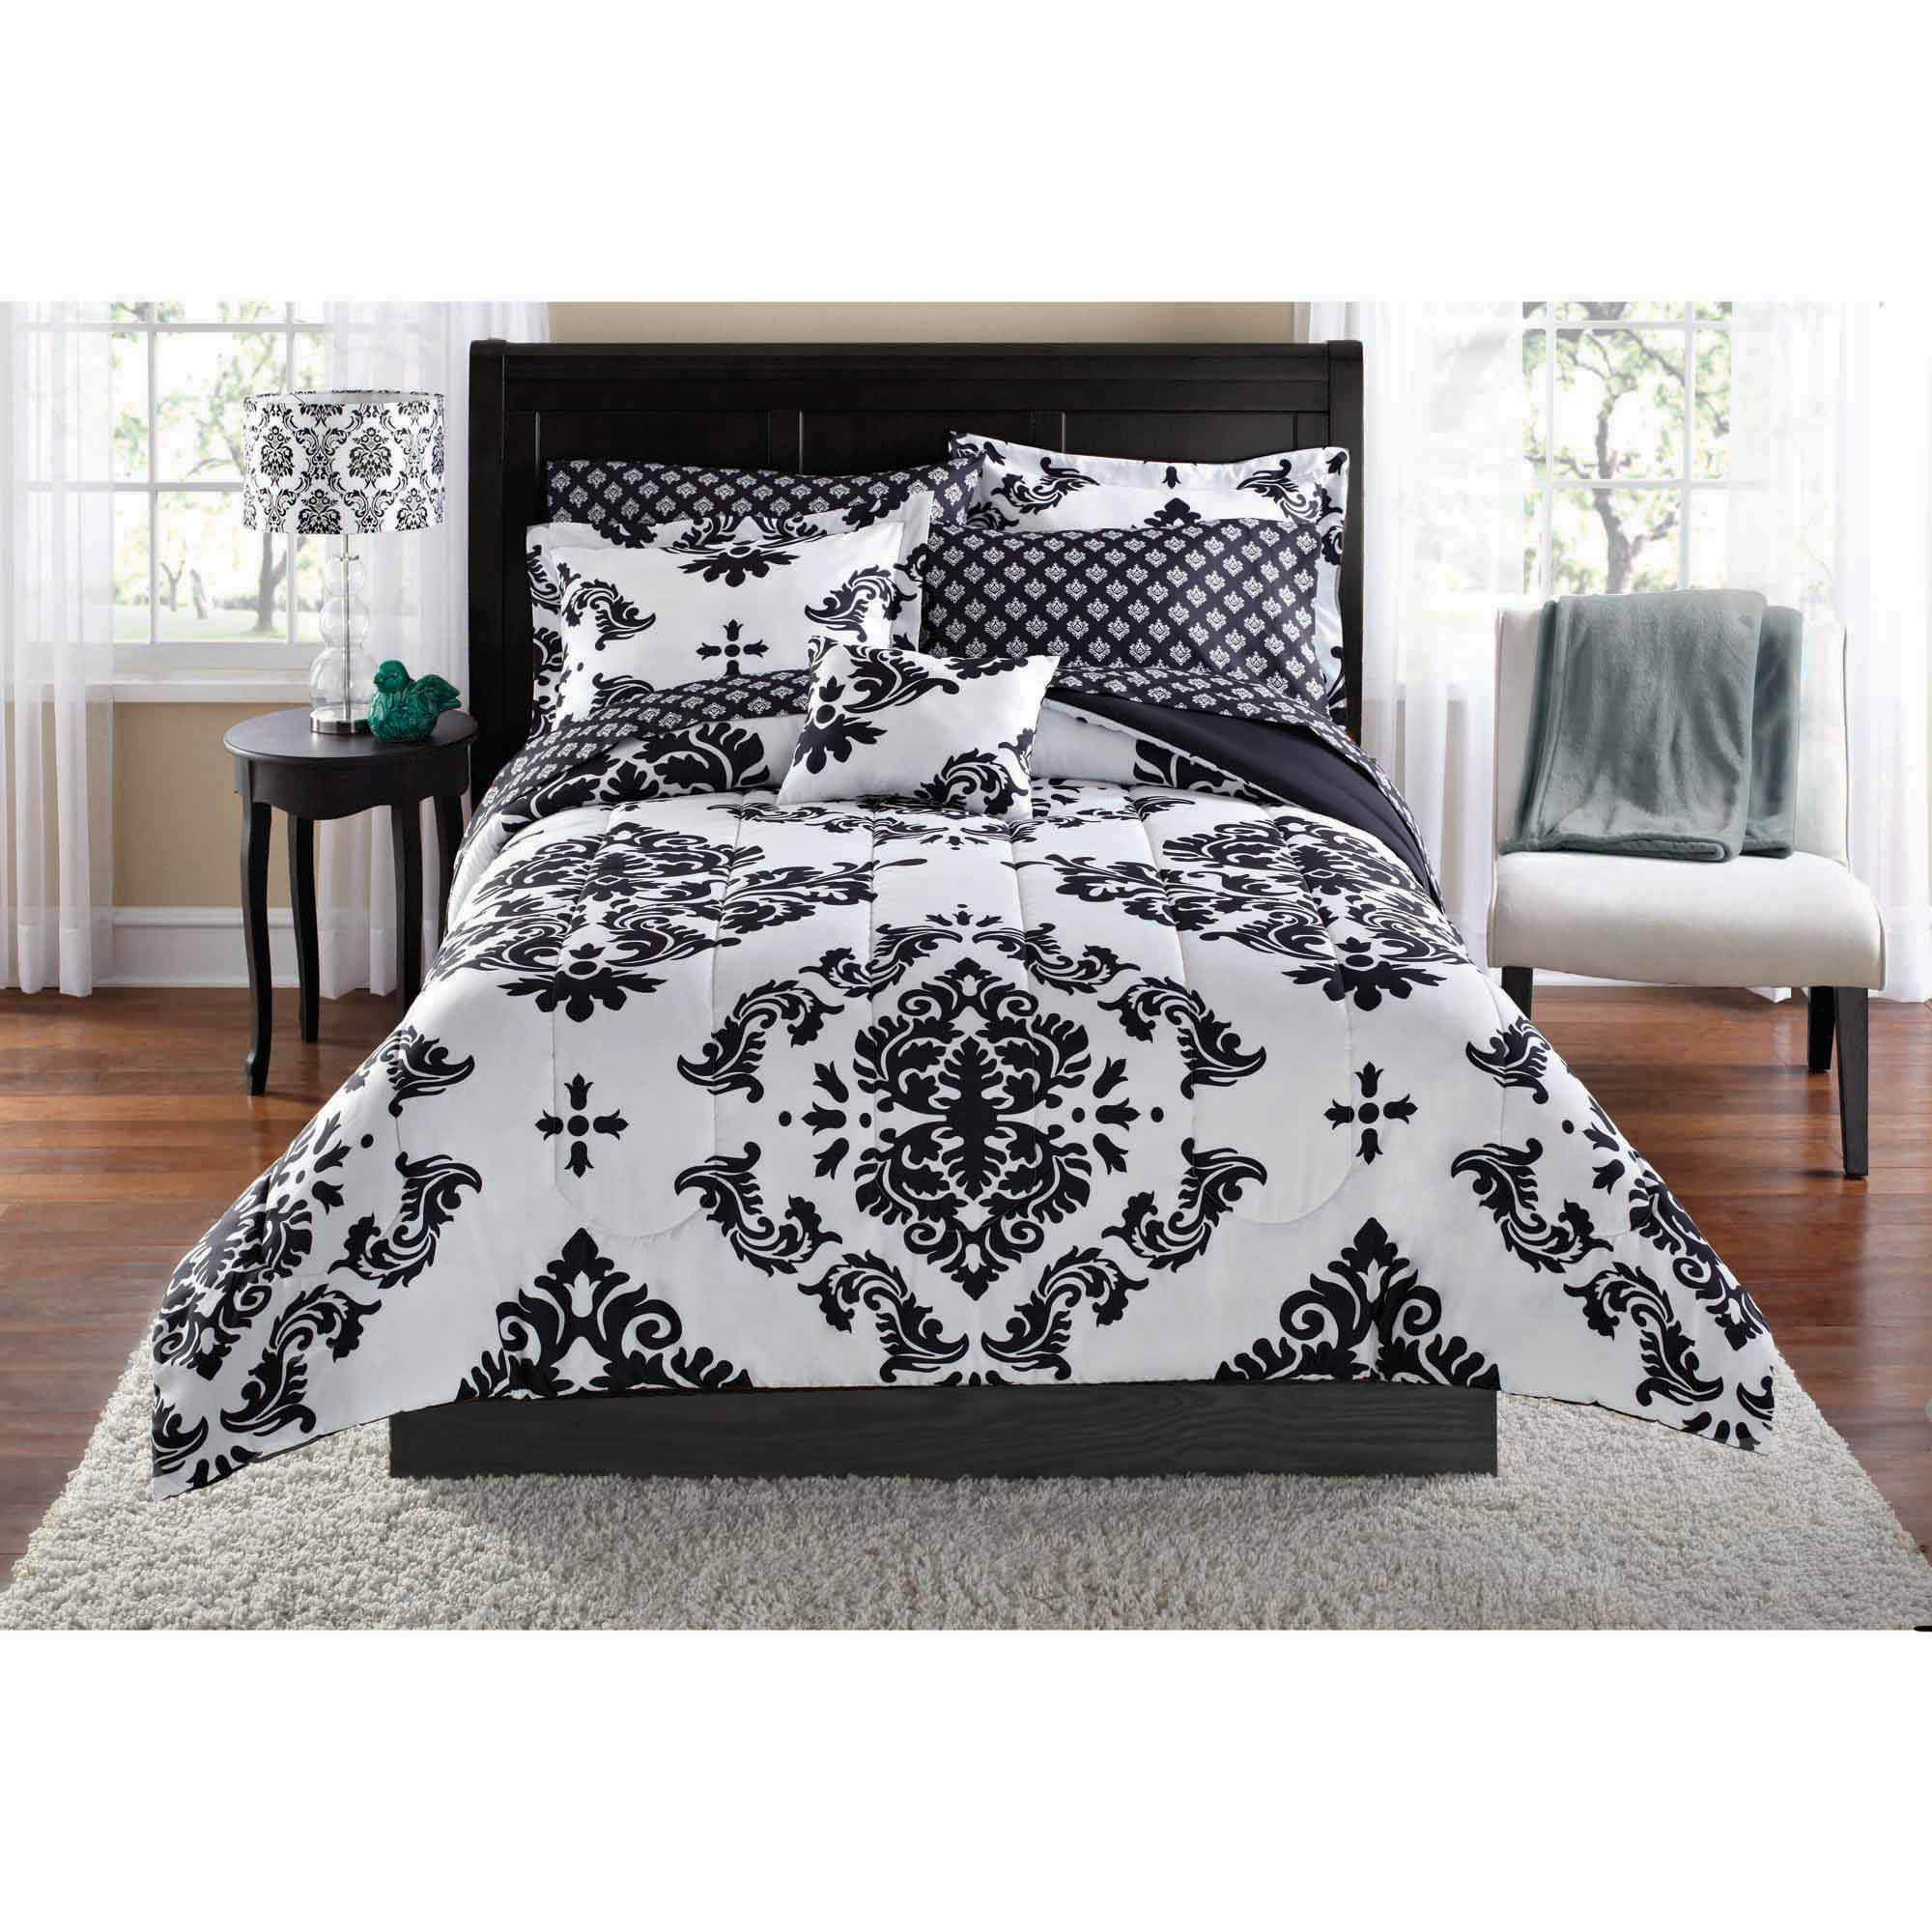 Superior Mainstays Classic Noir Twin Twin XL Bed In A Bag Coordinating Bedding Set,  Black   Walmart.com